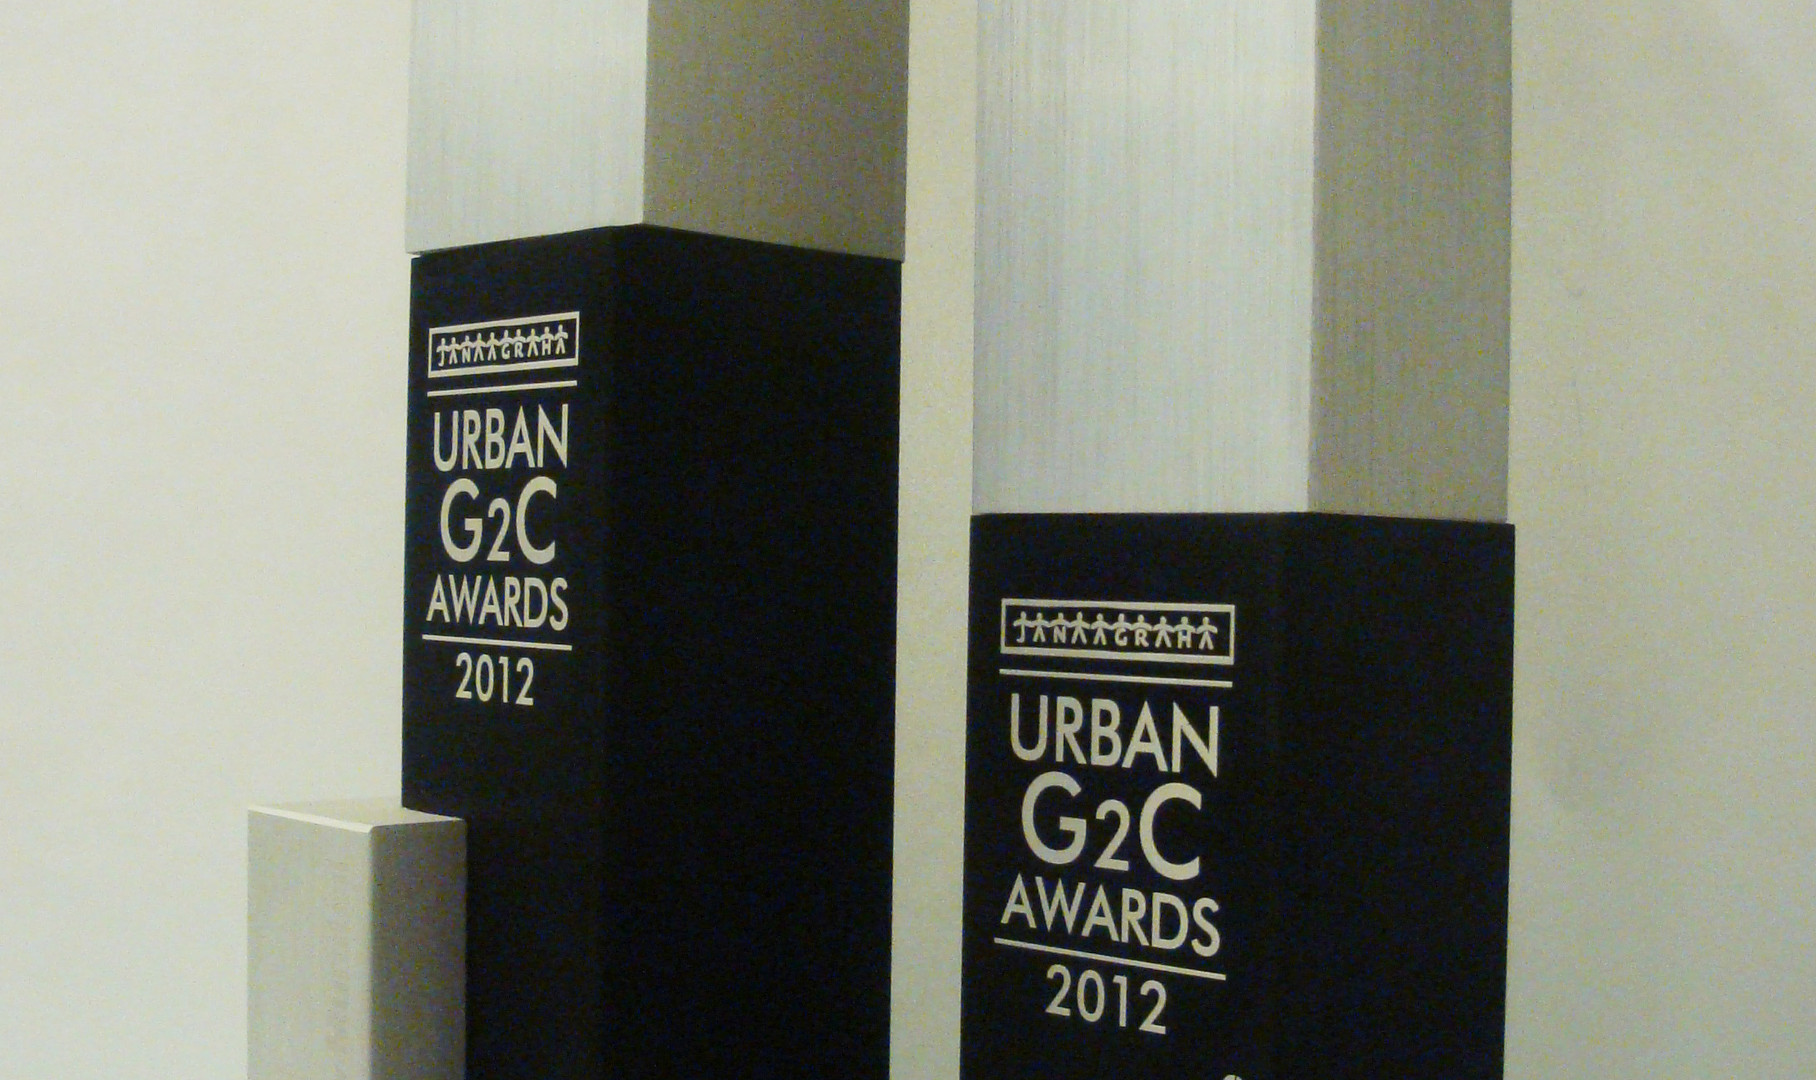 Jana Urban G2C Awards